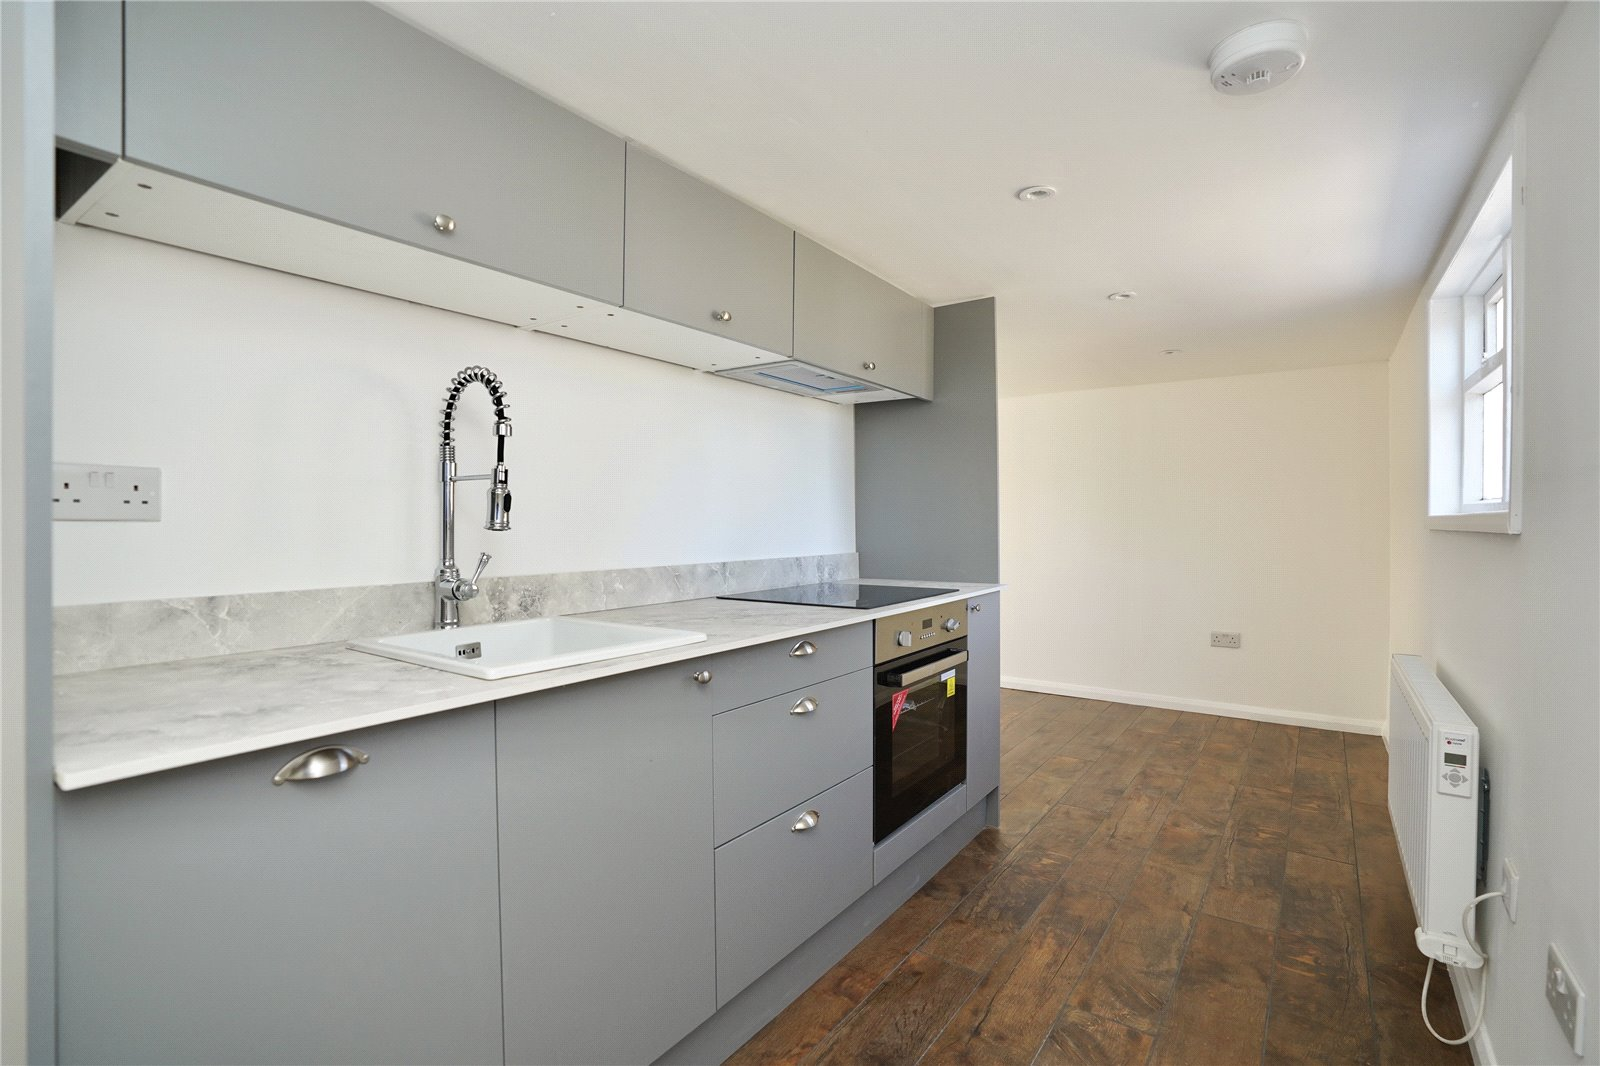 2 bed house for sale in Toseland, PE19 6RX  - Property Image 1